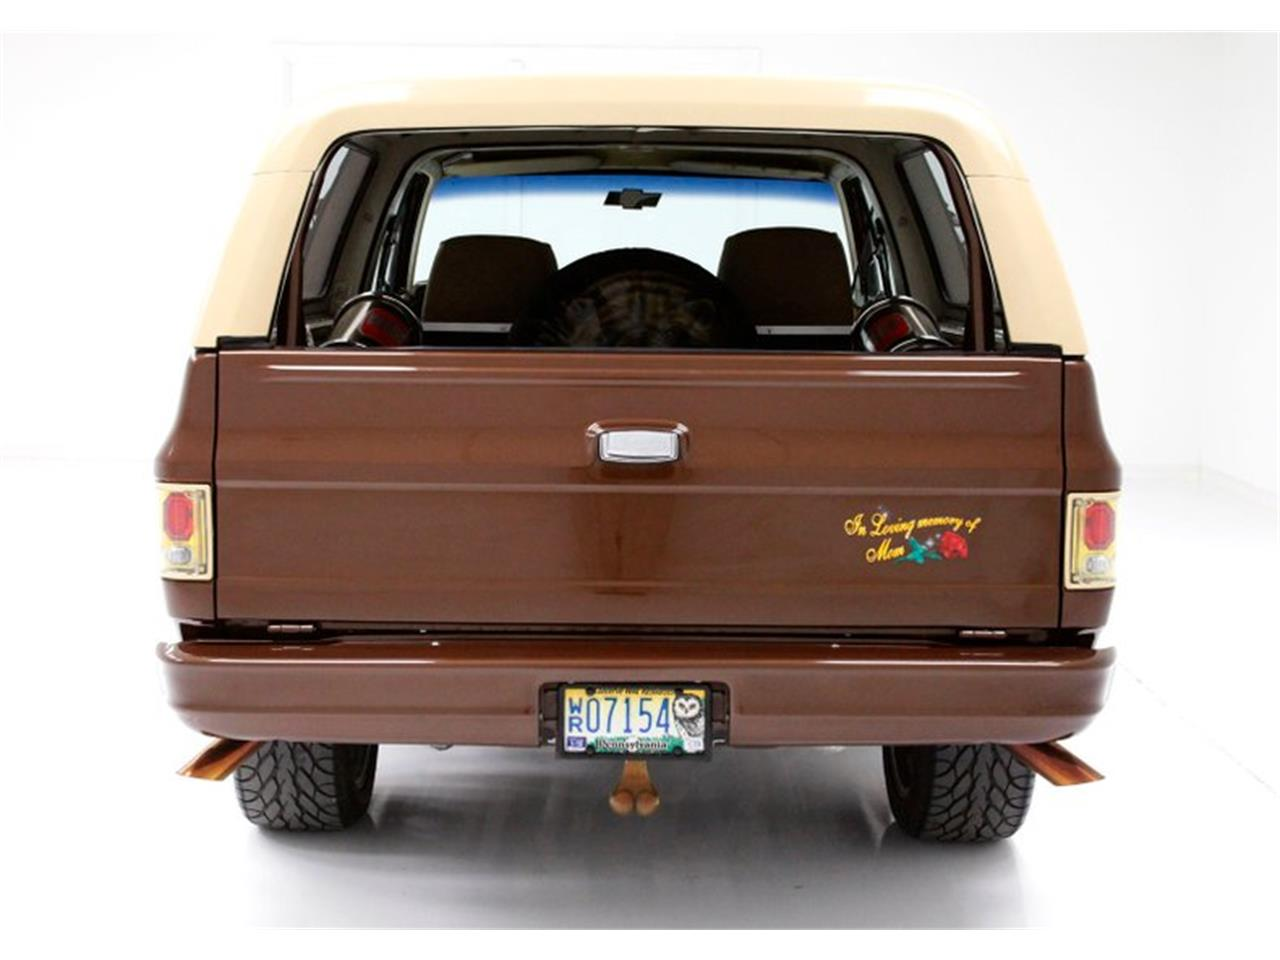 Used Food Trucks For Sale Under 5000 >> 1978 Chevrolet Blazer for Sale   ClassicCars.com   CC-1159173